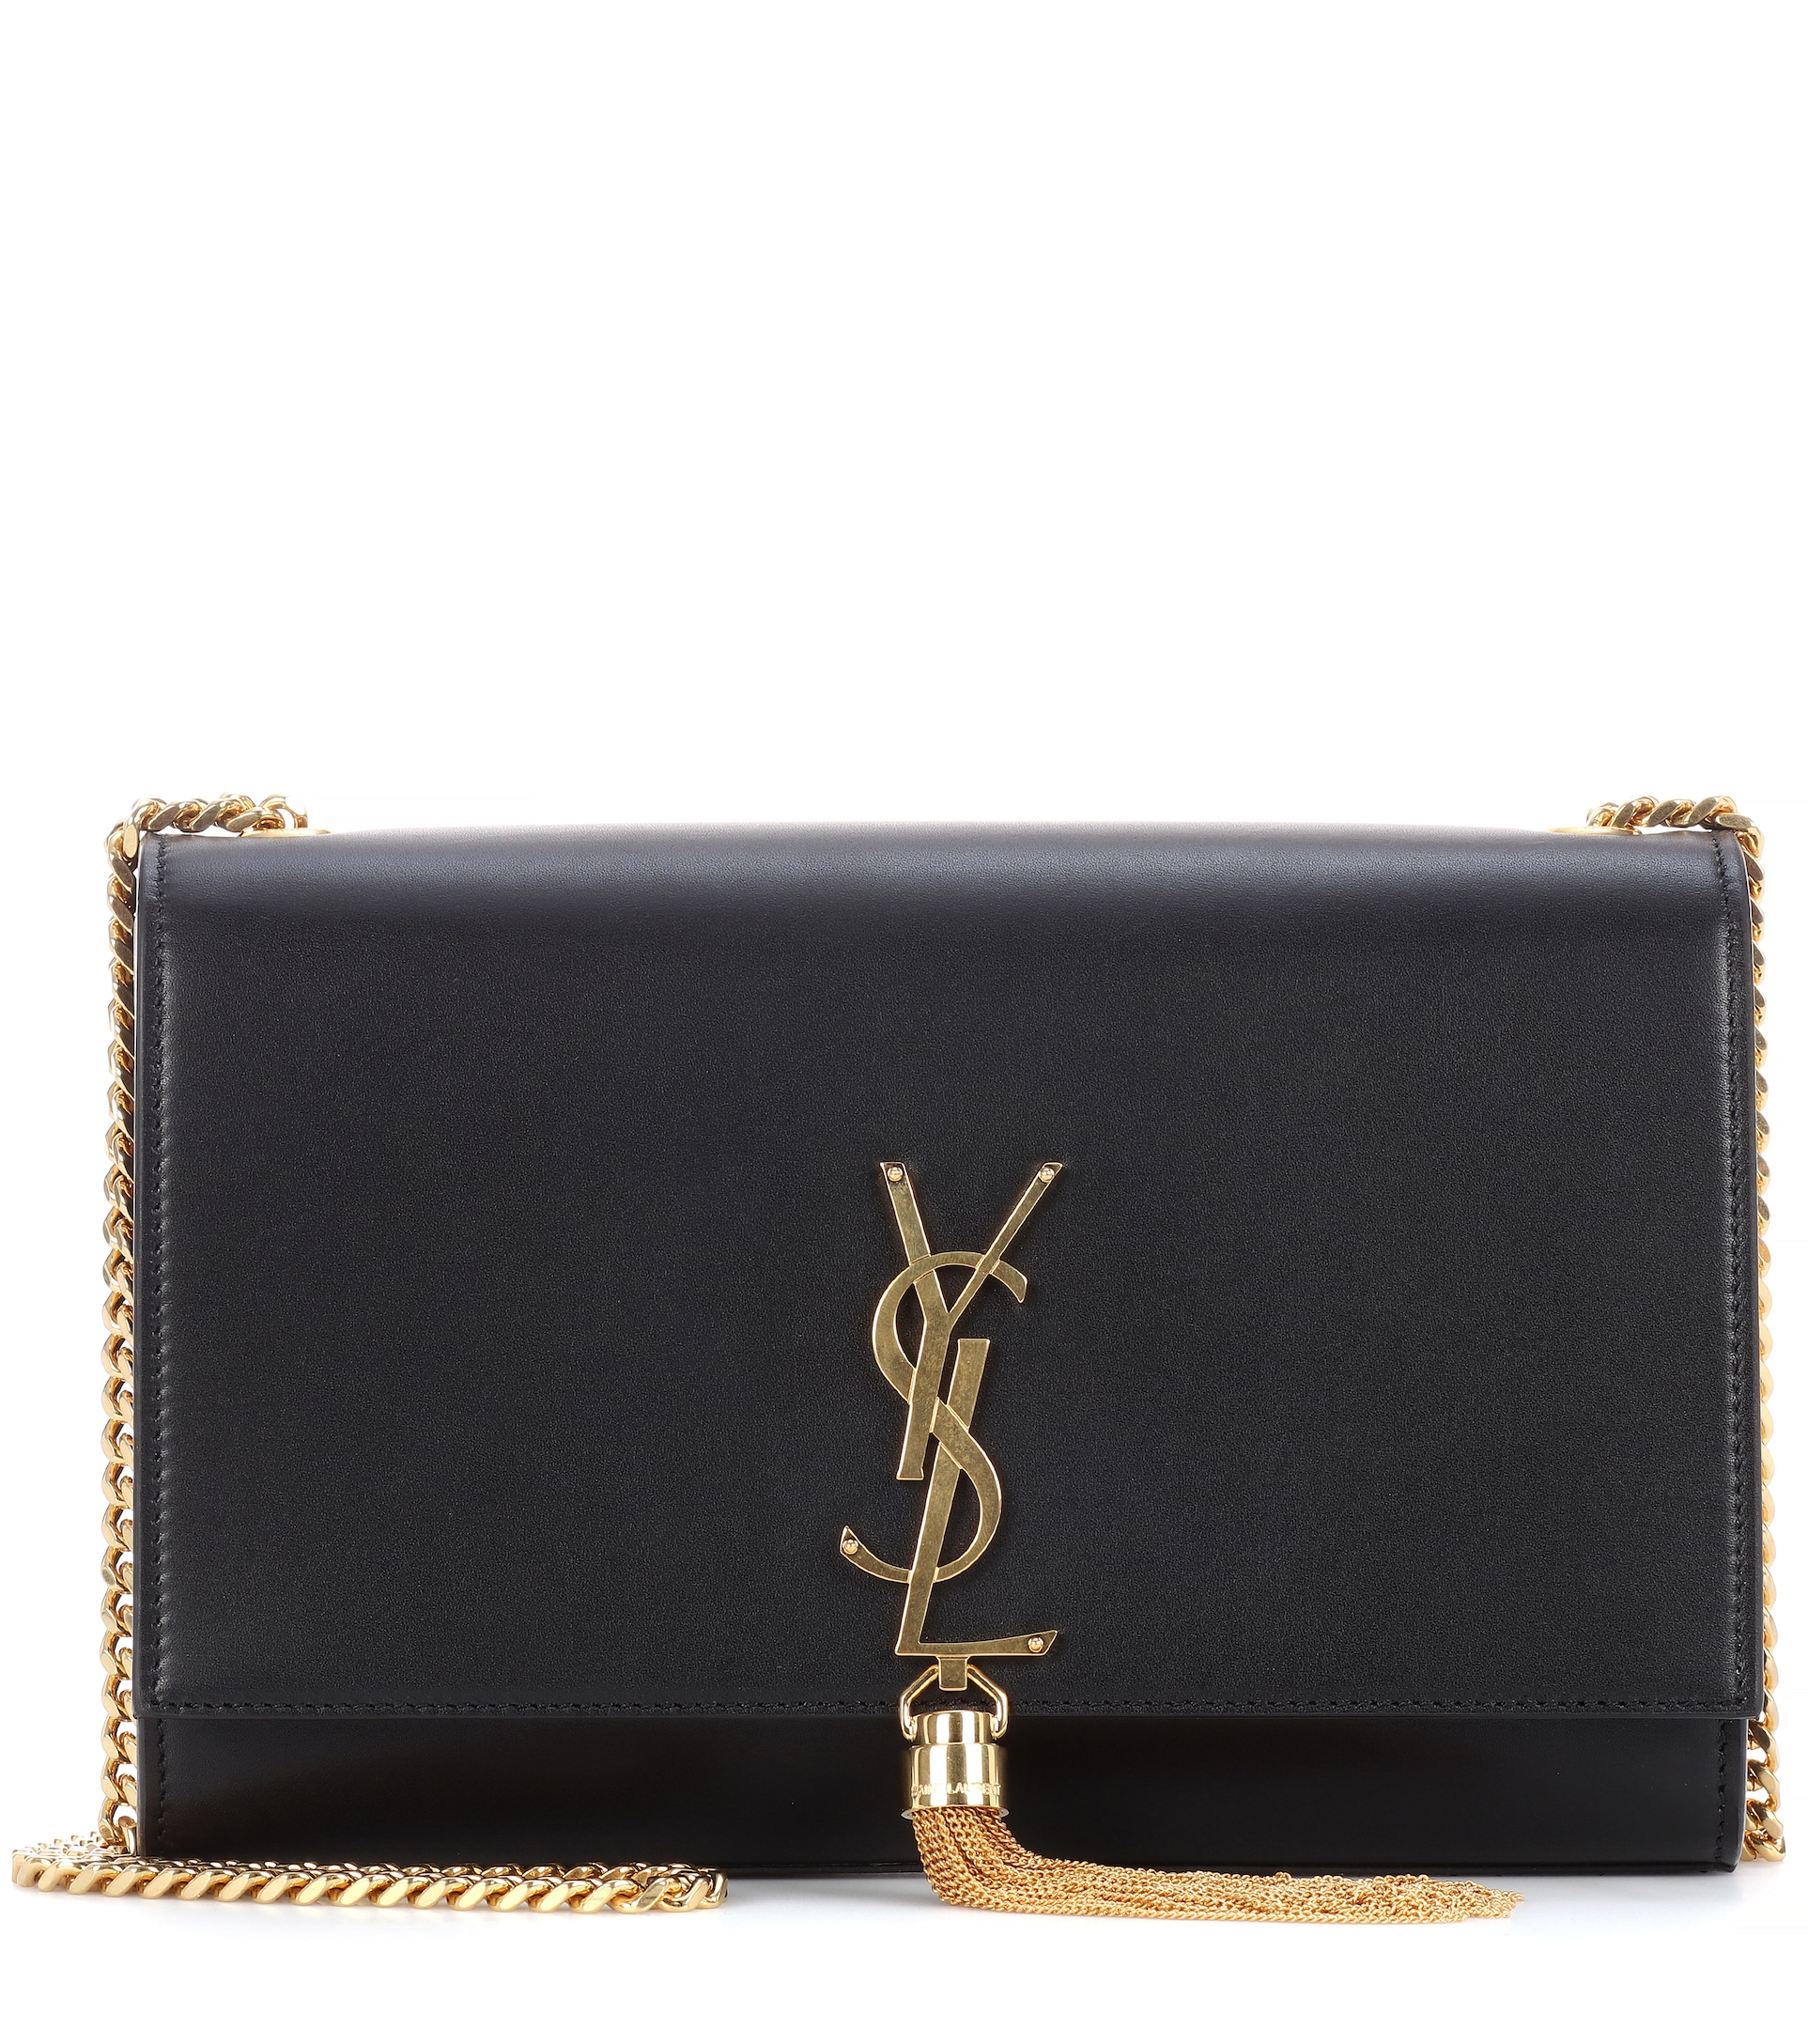 Ysl Small Kate Tassel Bag Black Adorn Collection